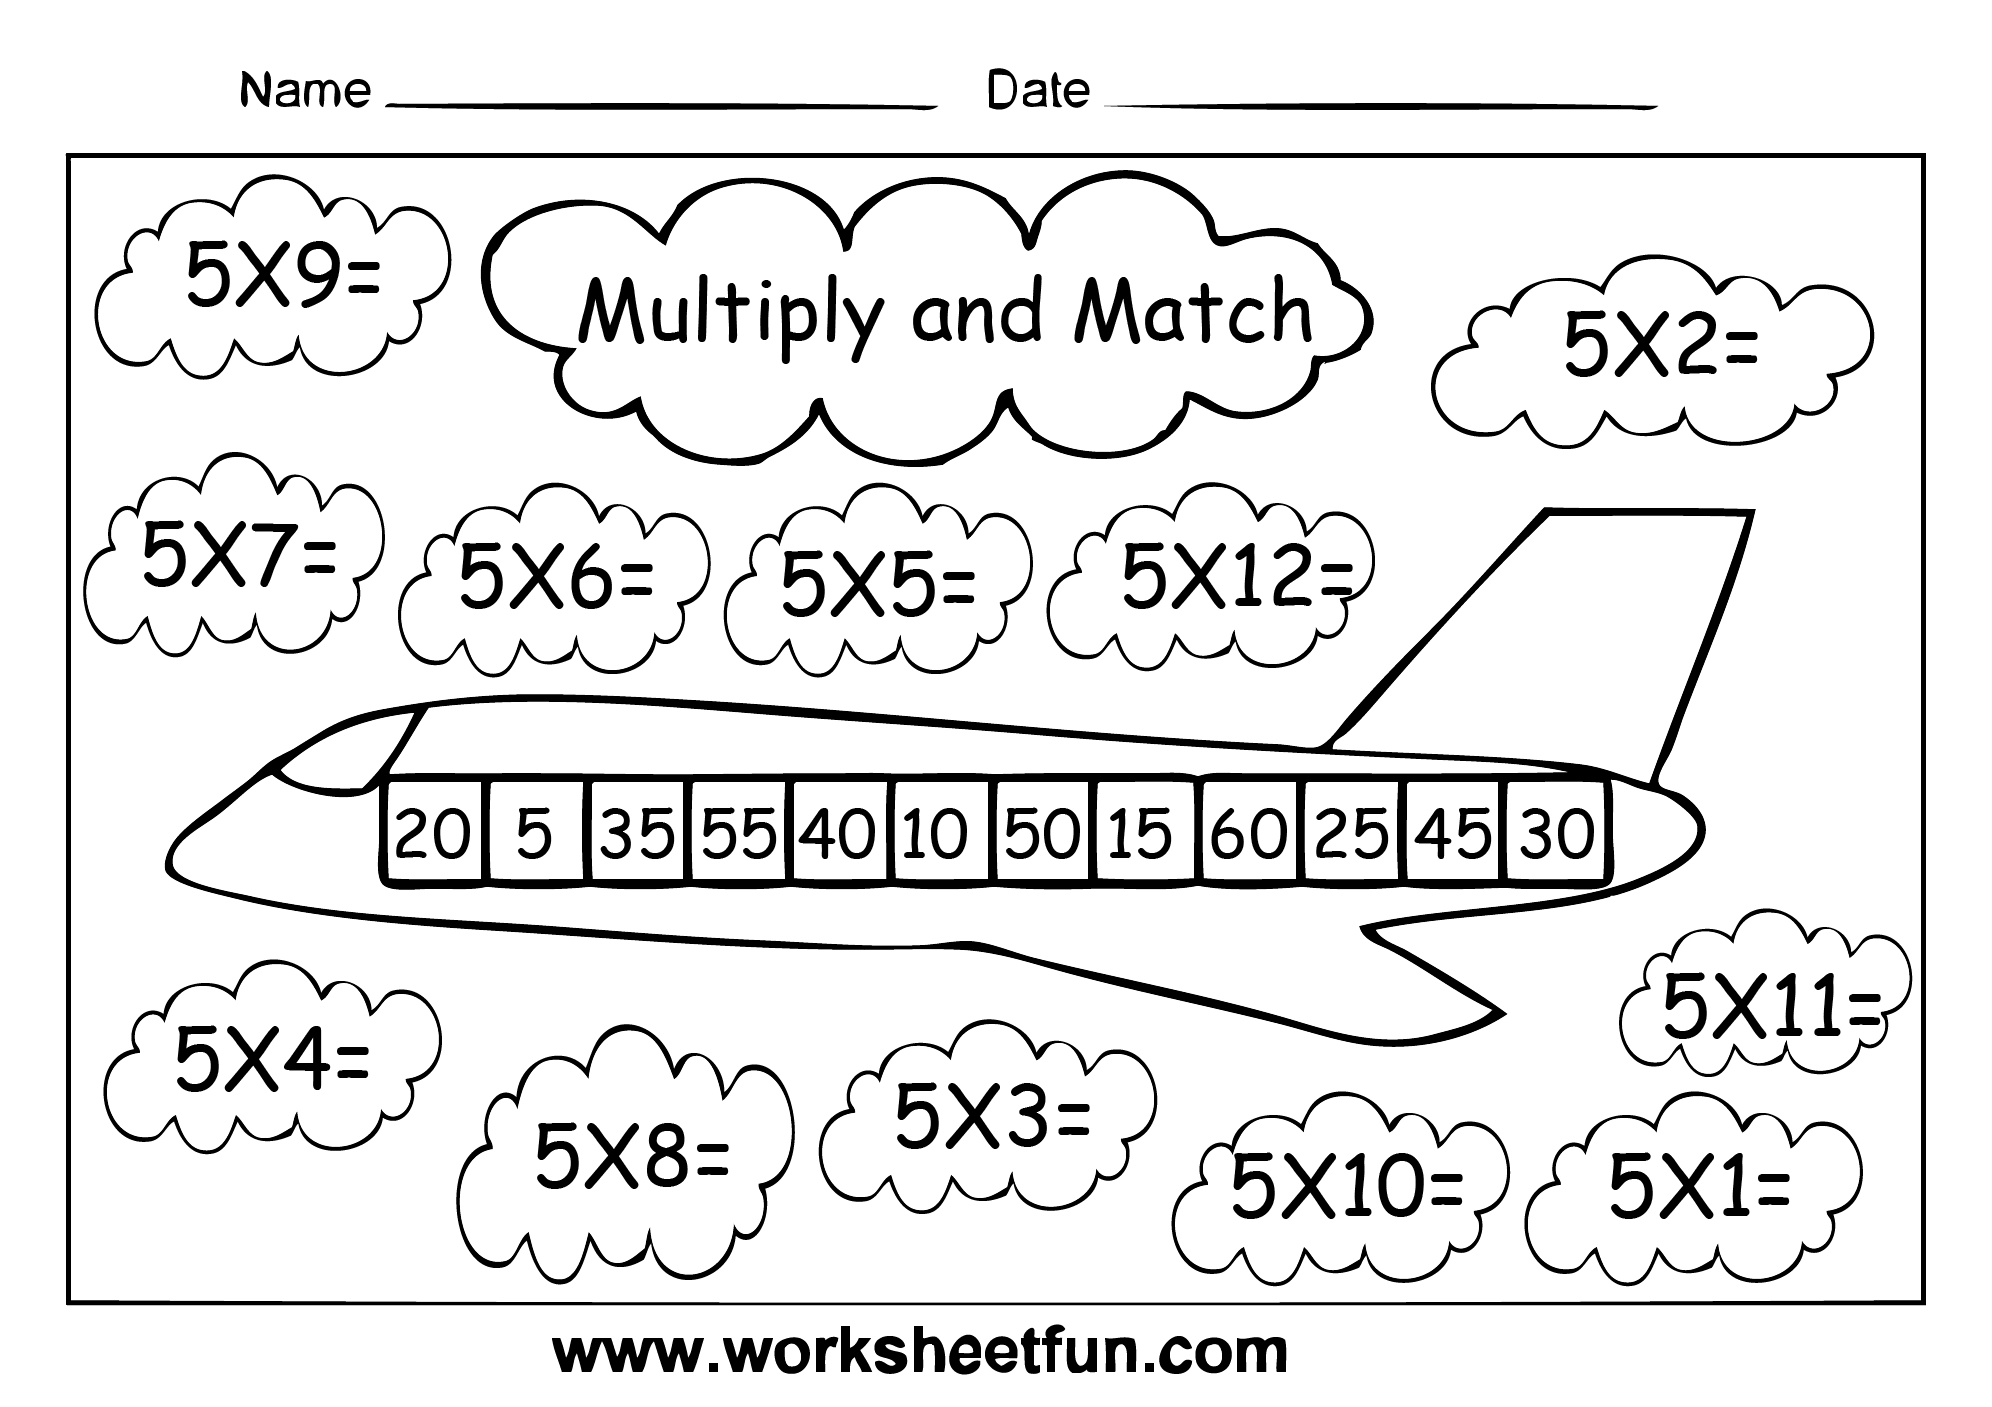 Times Table Eight Worksheets Multiplication worksheets